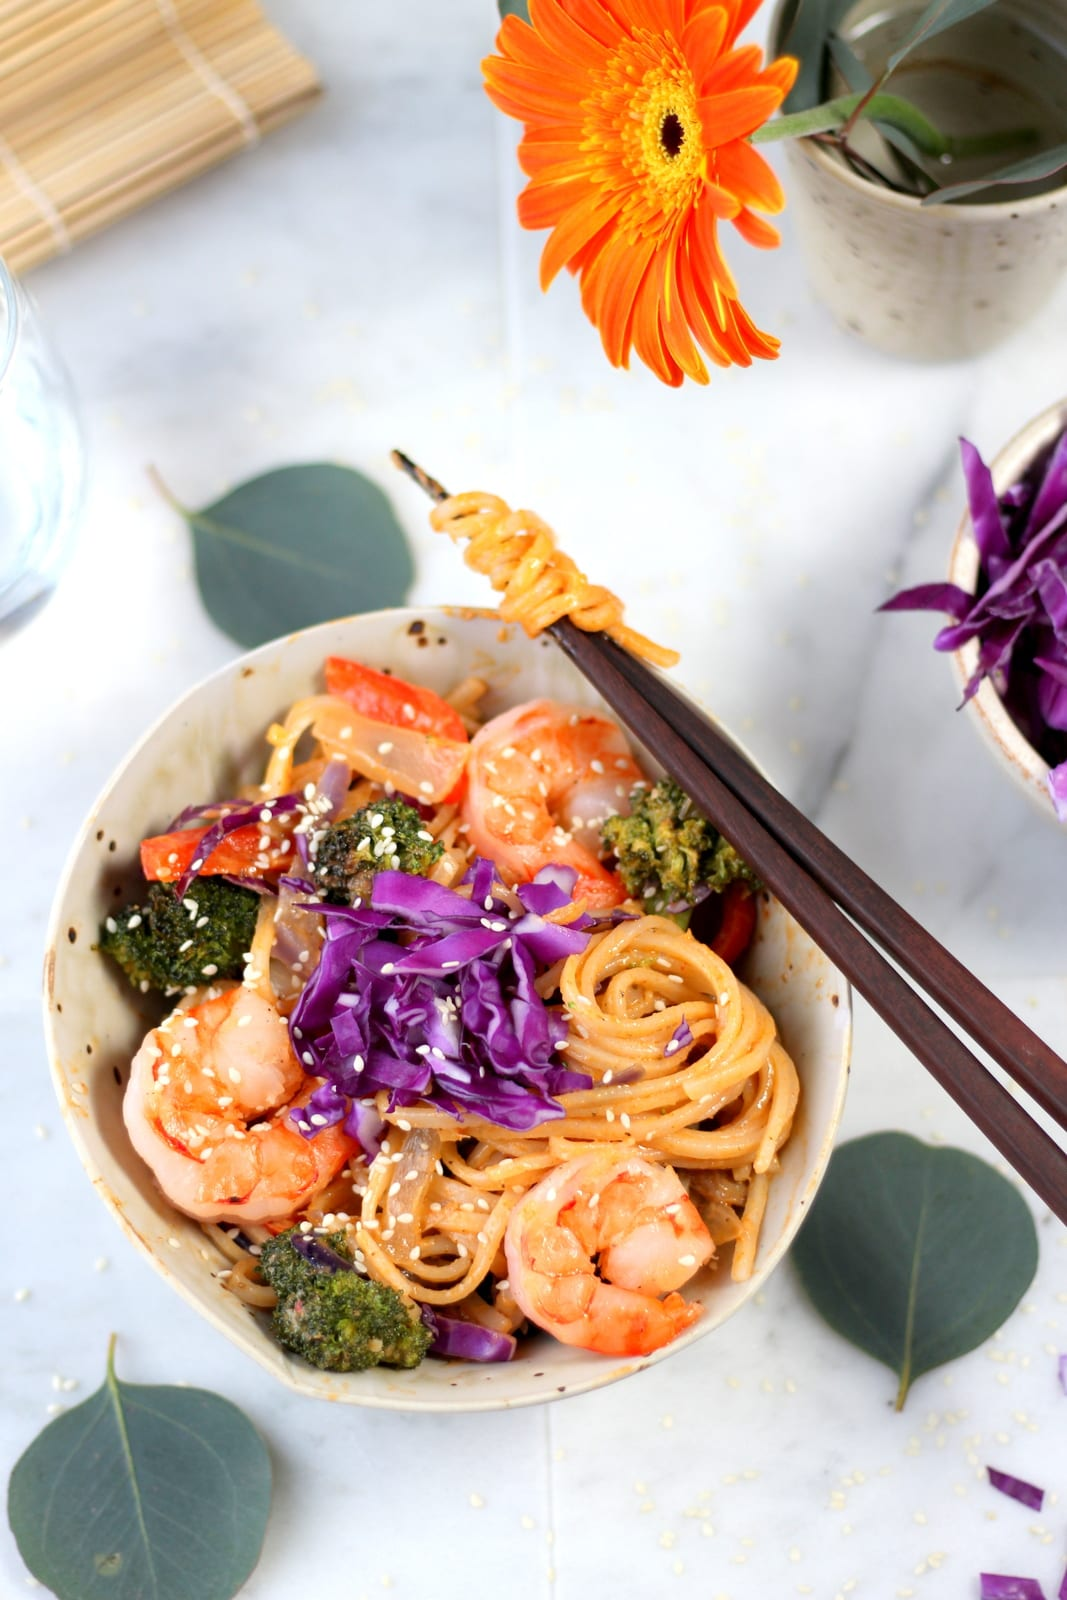 Sweet Curried Rice Noodles +Shrimp and Roasted Vegetables - amazing recipe for Bangkok Curry noodles.   thewoodenskillet.com #foodphotograhy #foodstyling